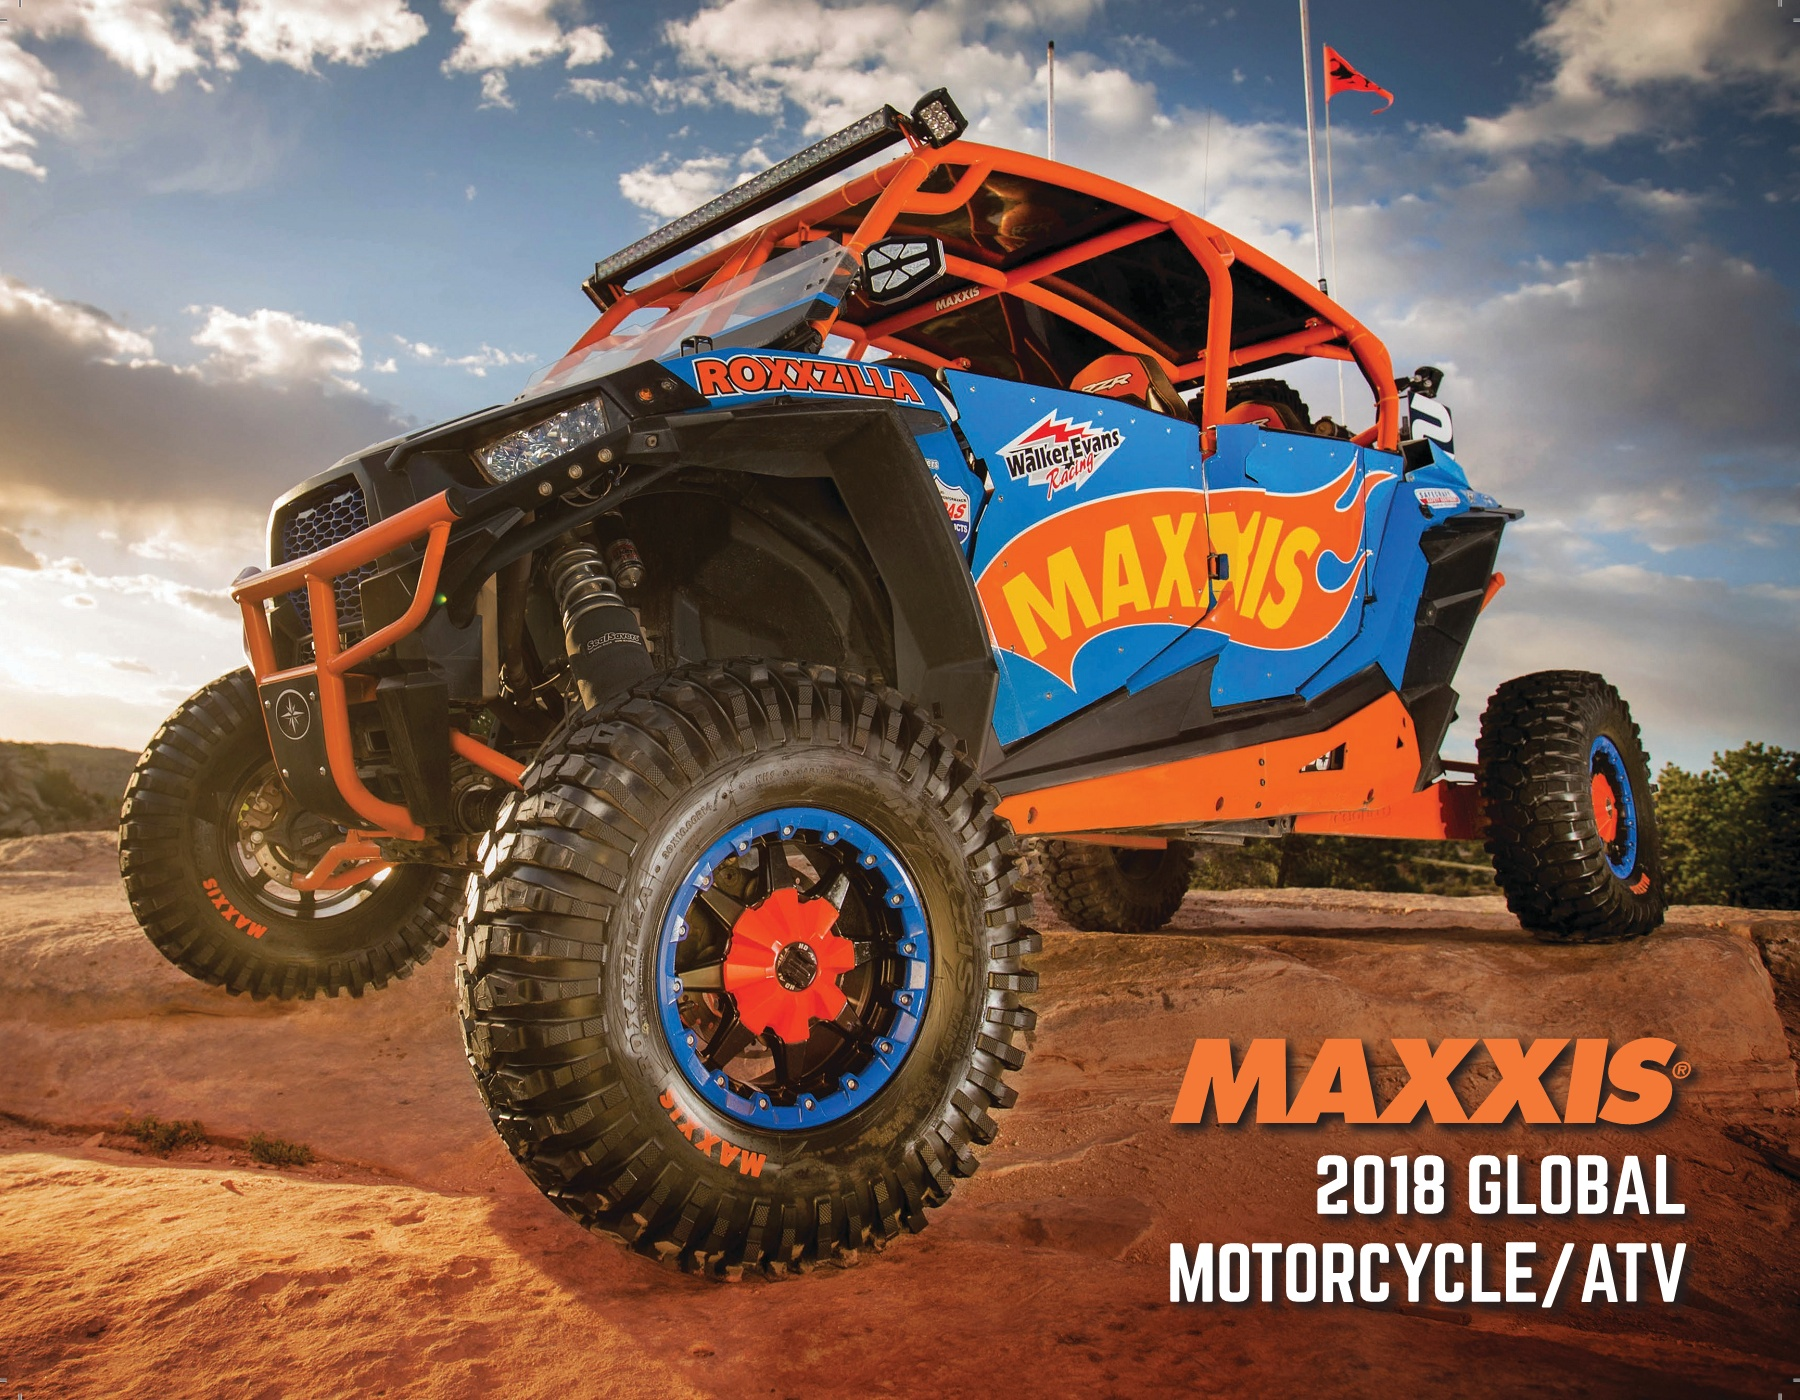 Maxxis carnivore 30x10-14 ML1 off-road tyres